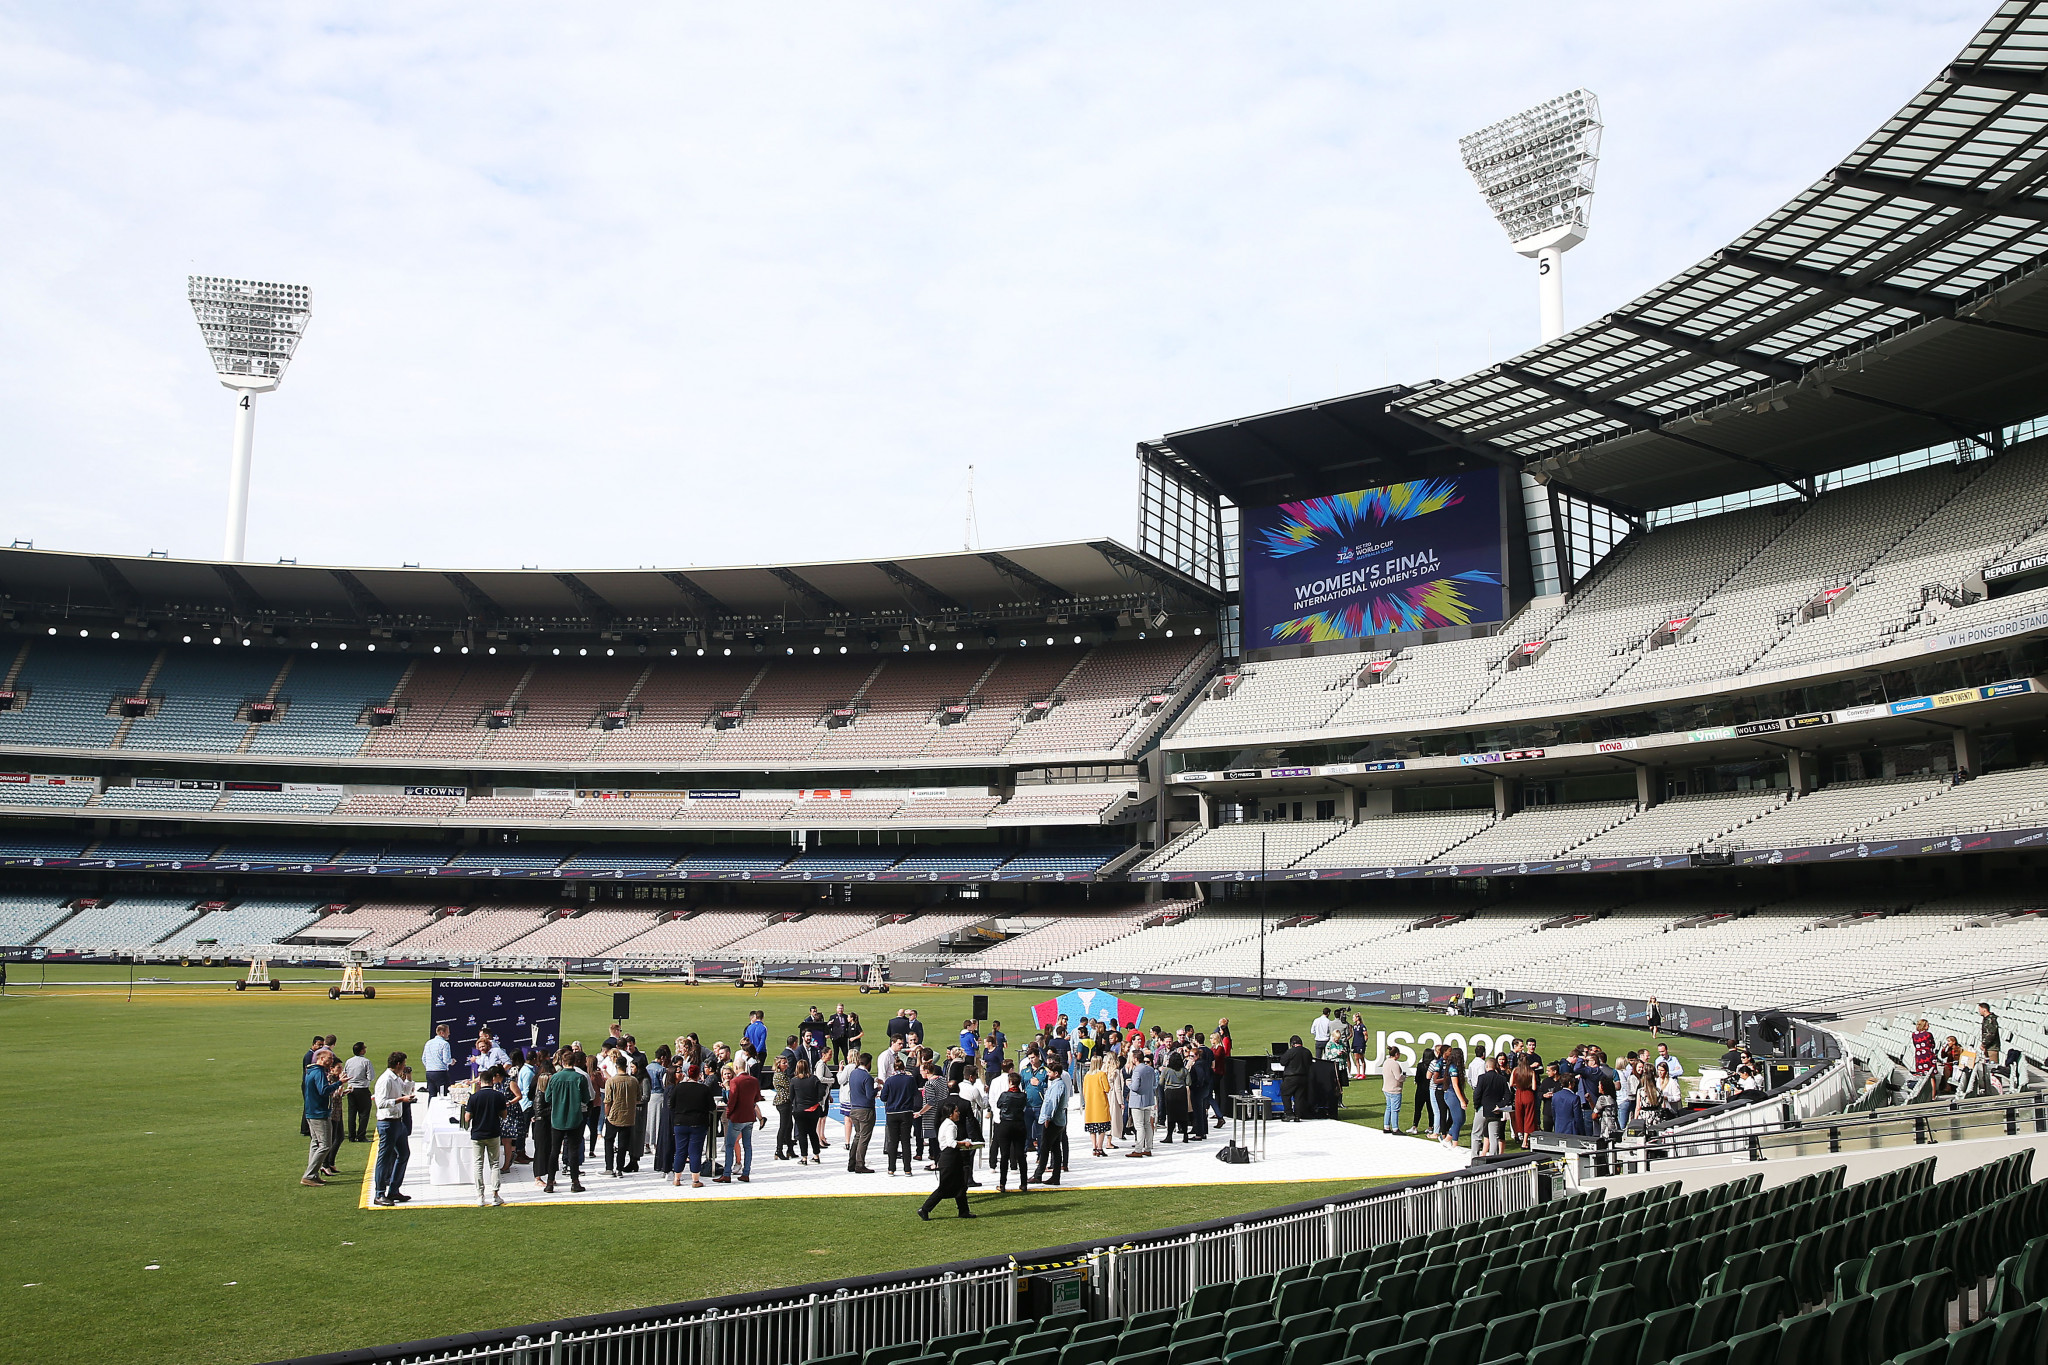 Melbourne Cricket Ground will host the women's T20 World Cup final ©Getty Images